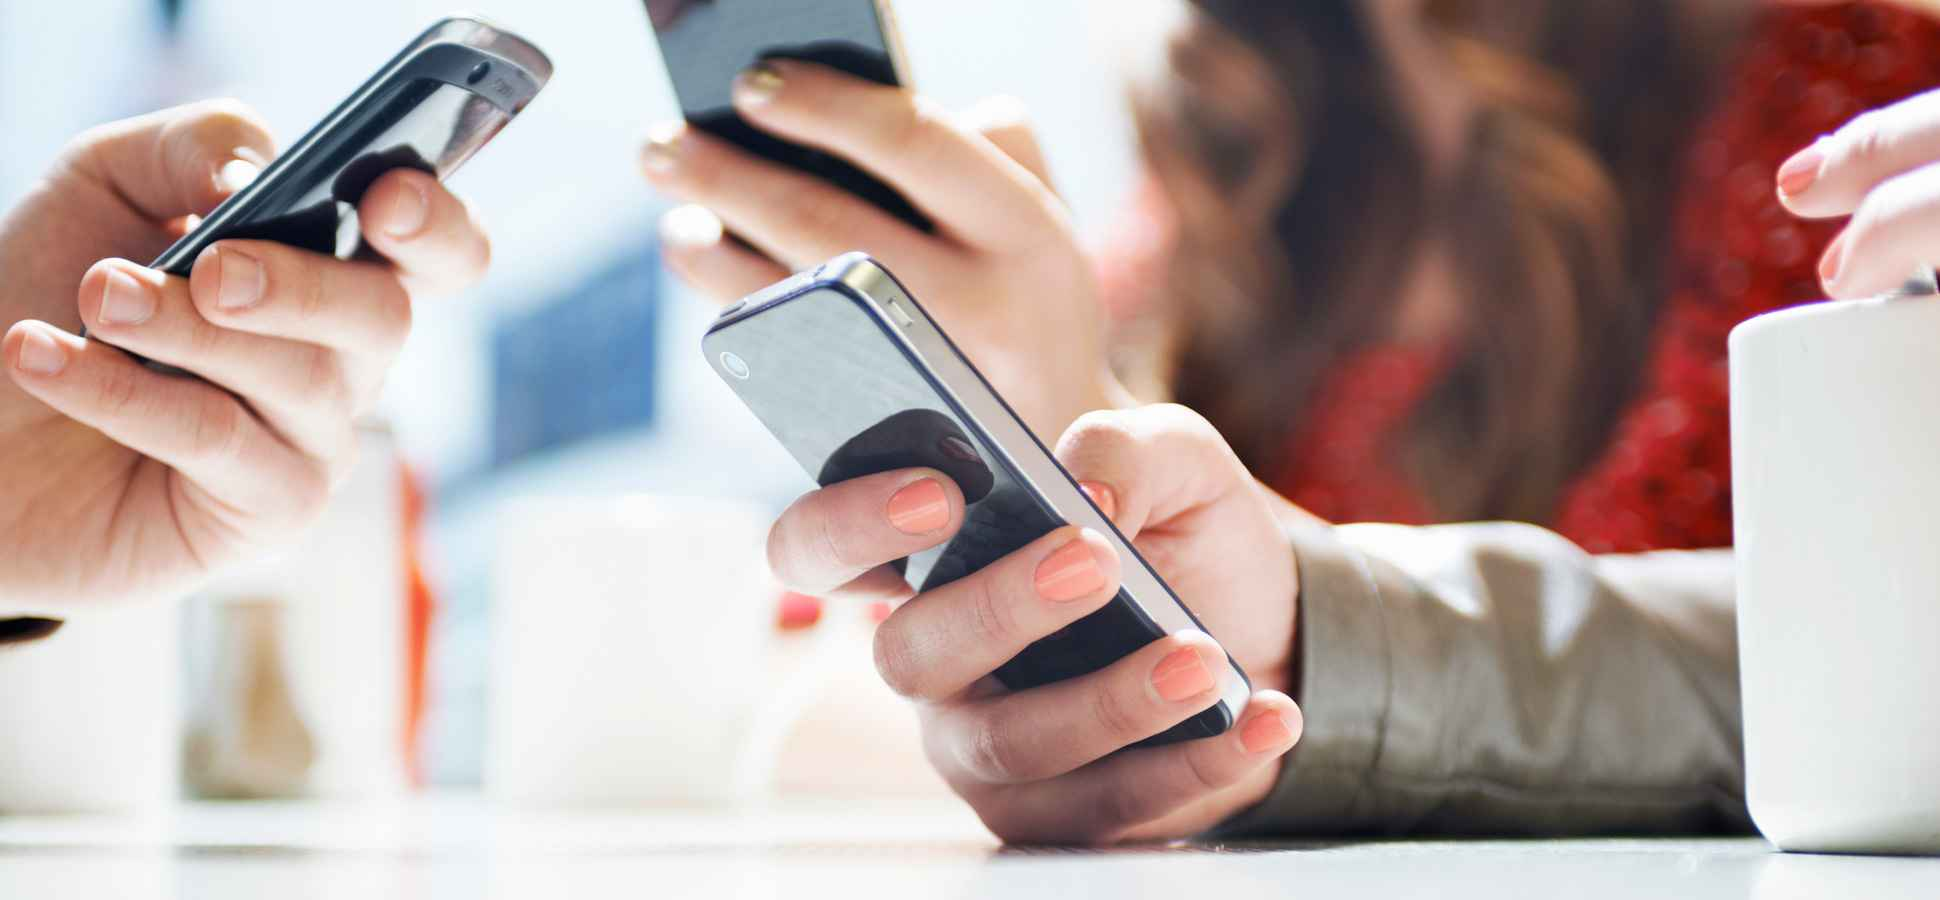 Mobile Ad Spending Expected to Increase by 75 Percent in 2014